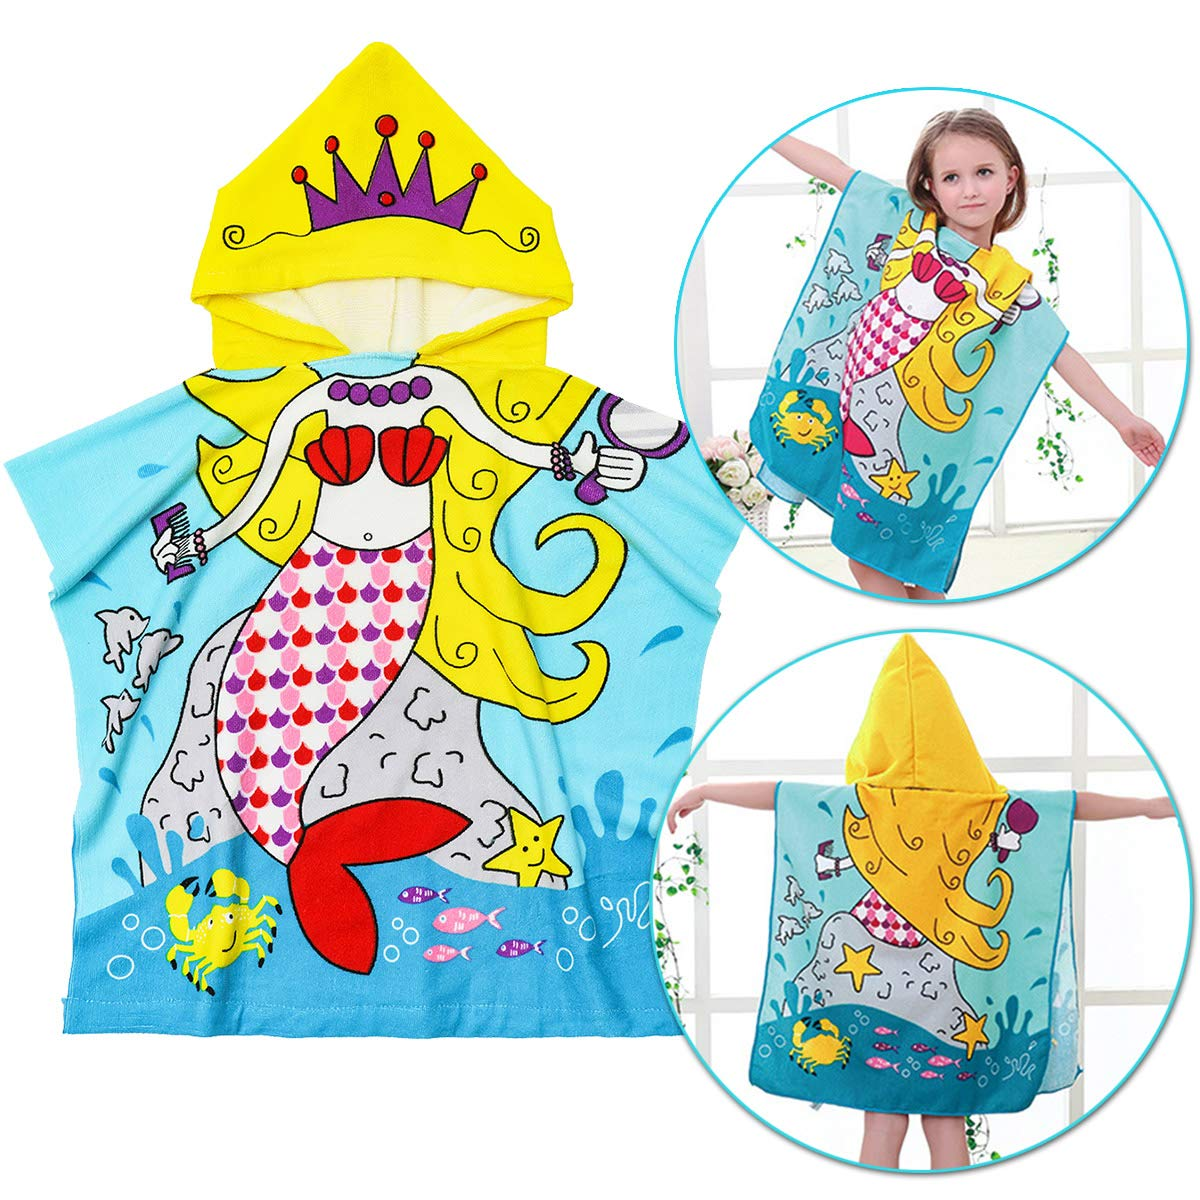 OUTERDO Kid Beach Towel Bath Hooded Towel Child Bathrobe 1 to 6 Years Old Poncho Towel Ultra Soft, Super Absorbent, Extra Large 48'' x 24'', Use for Swimming/Bath/Pool/Beach Times, Mermaid Theme Groopmoon